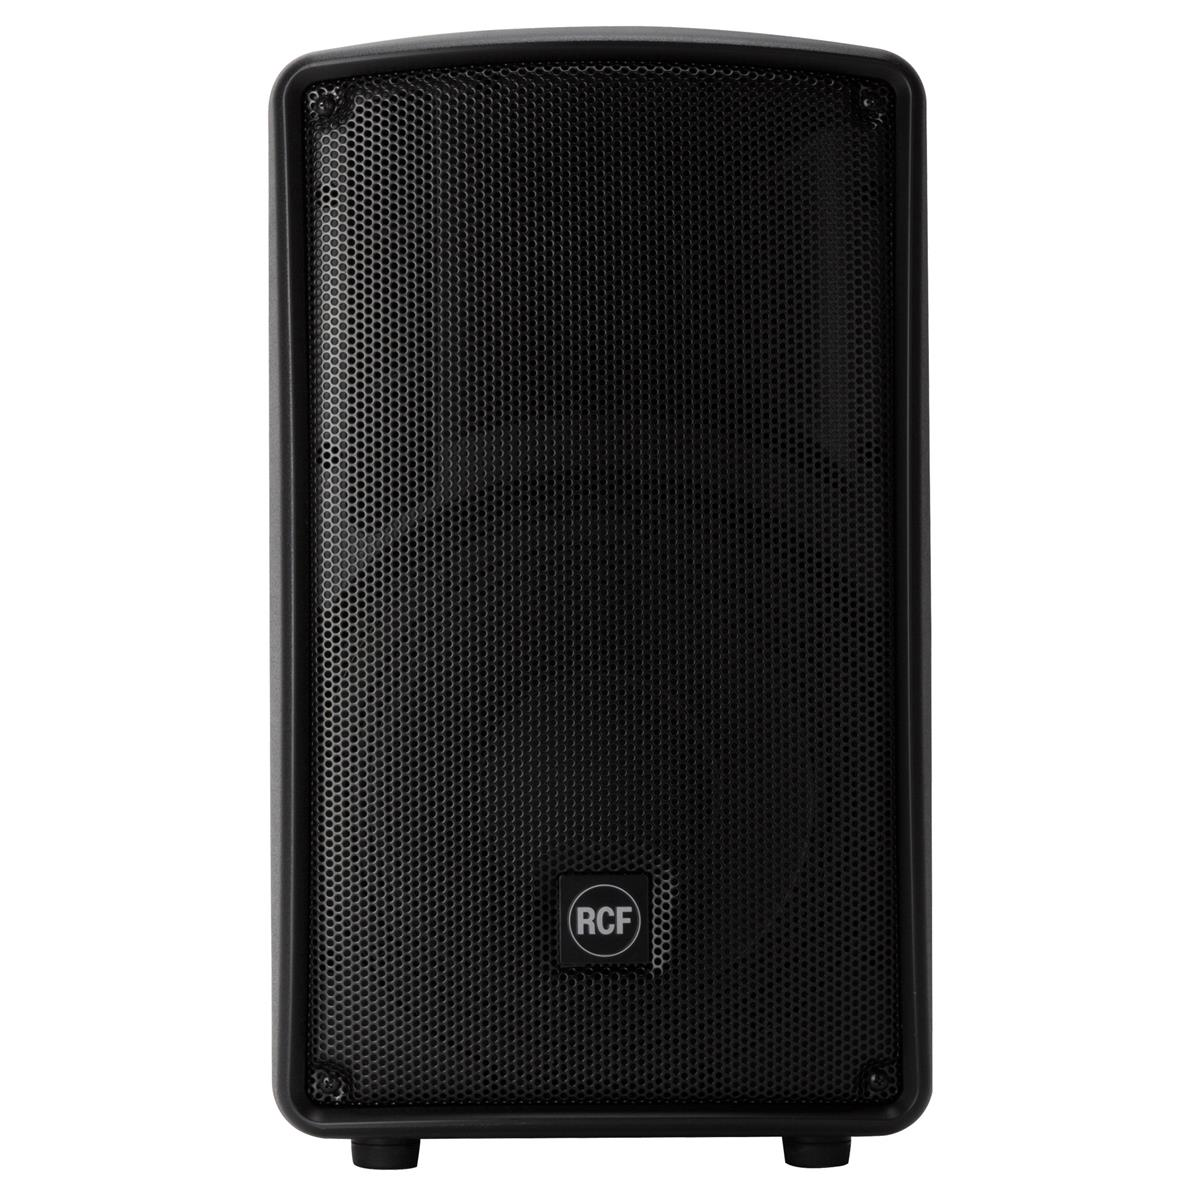 RCF Digital active speaker system 10in + 1in, 400Wrms, 800 W